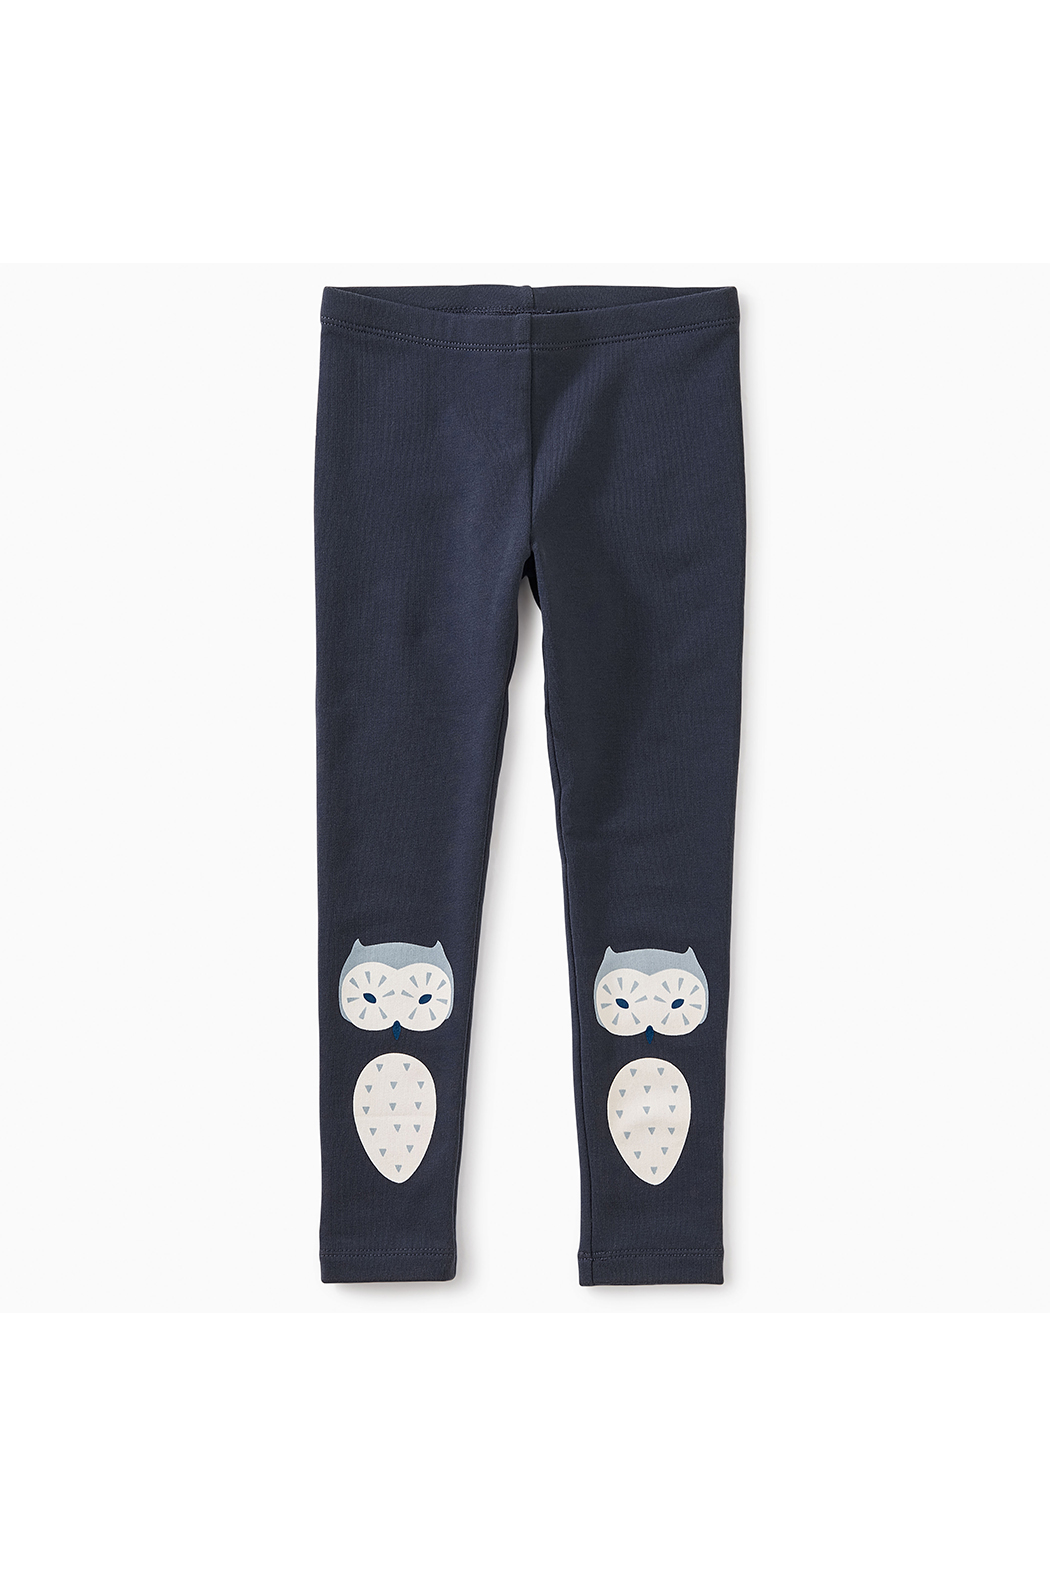 Tea Collection Wise Owl Cozy Leggings - Main Image